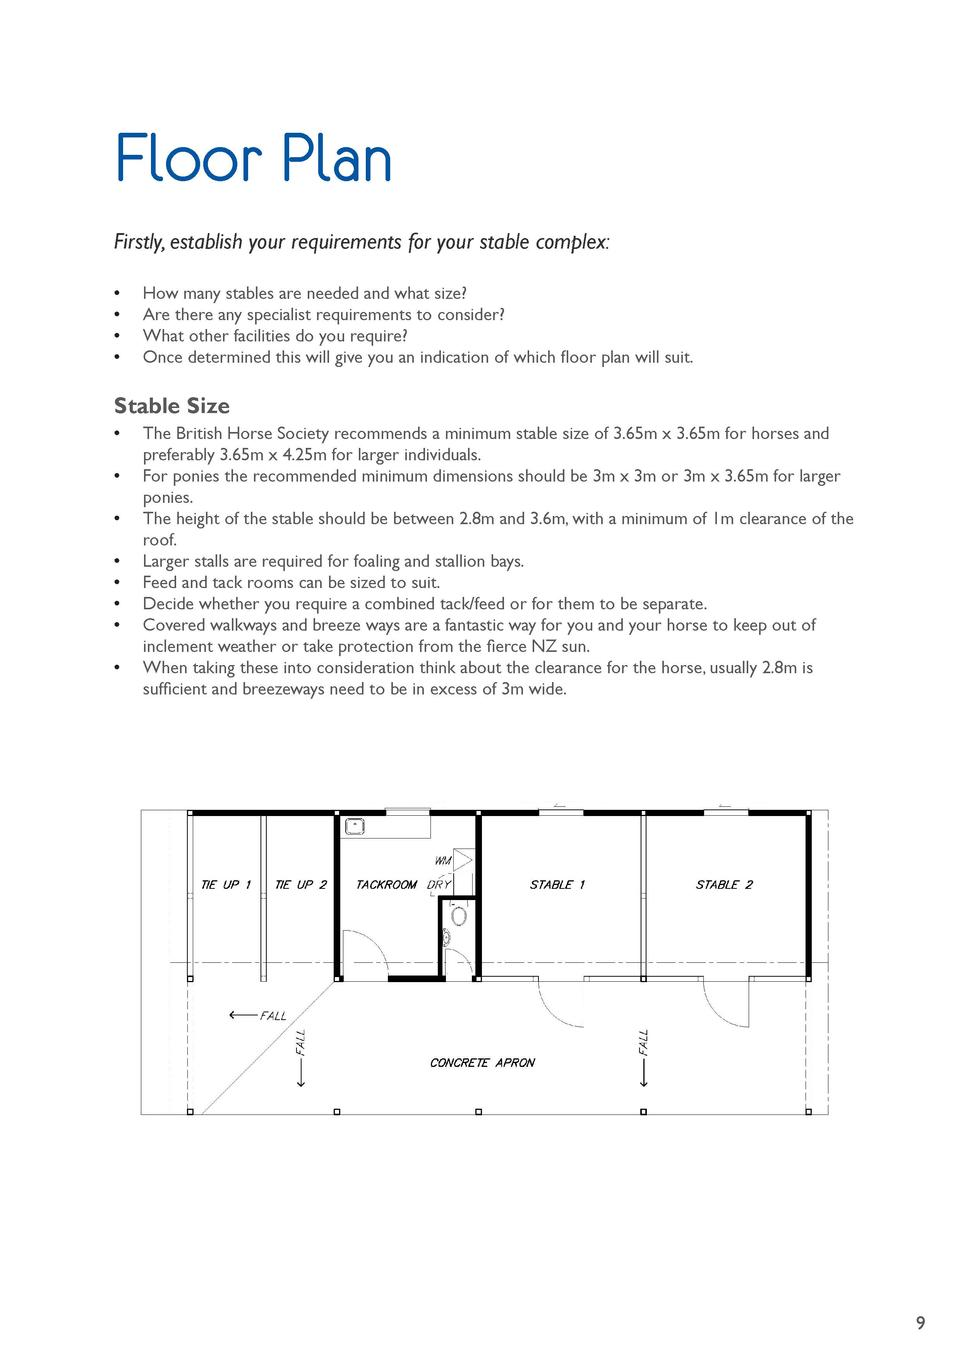 Floor Plan Firstly, establish your requirements for your stable complex                       How many stables are needed ...